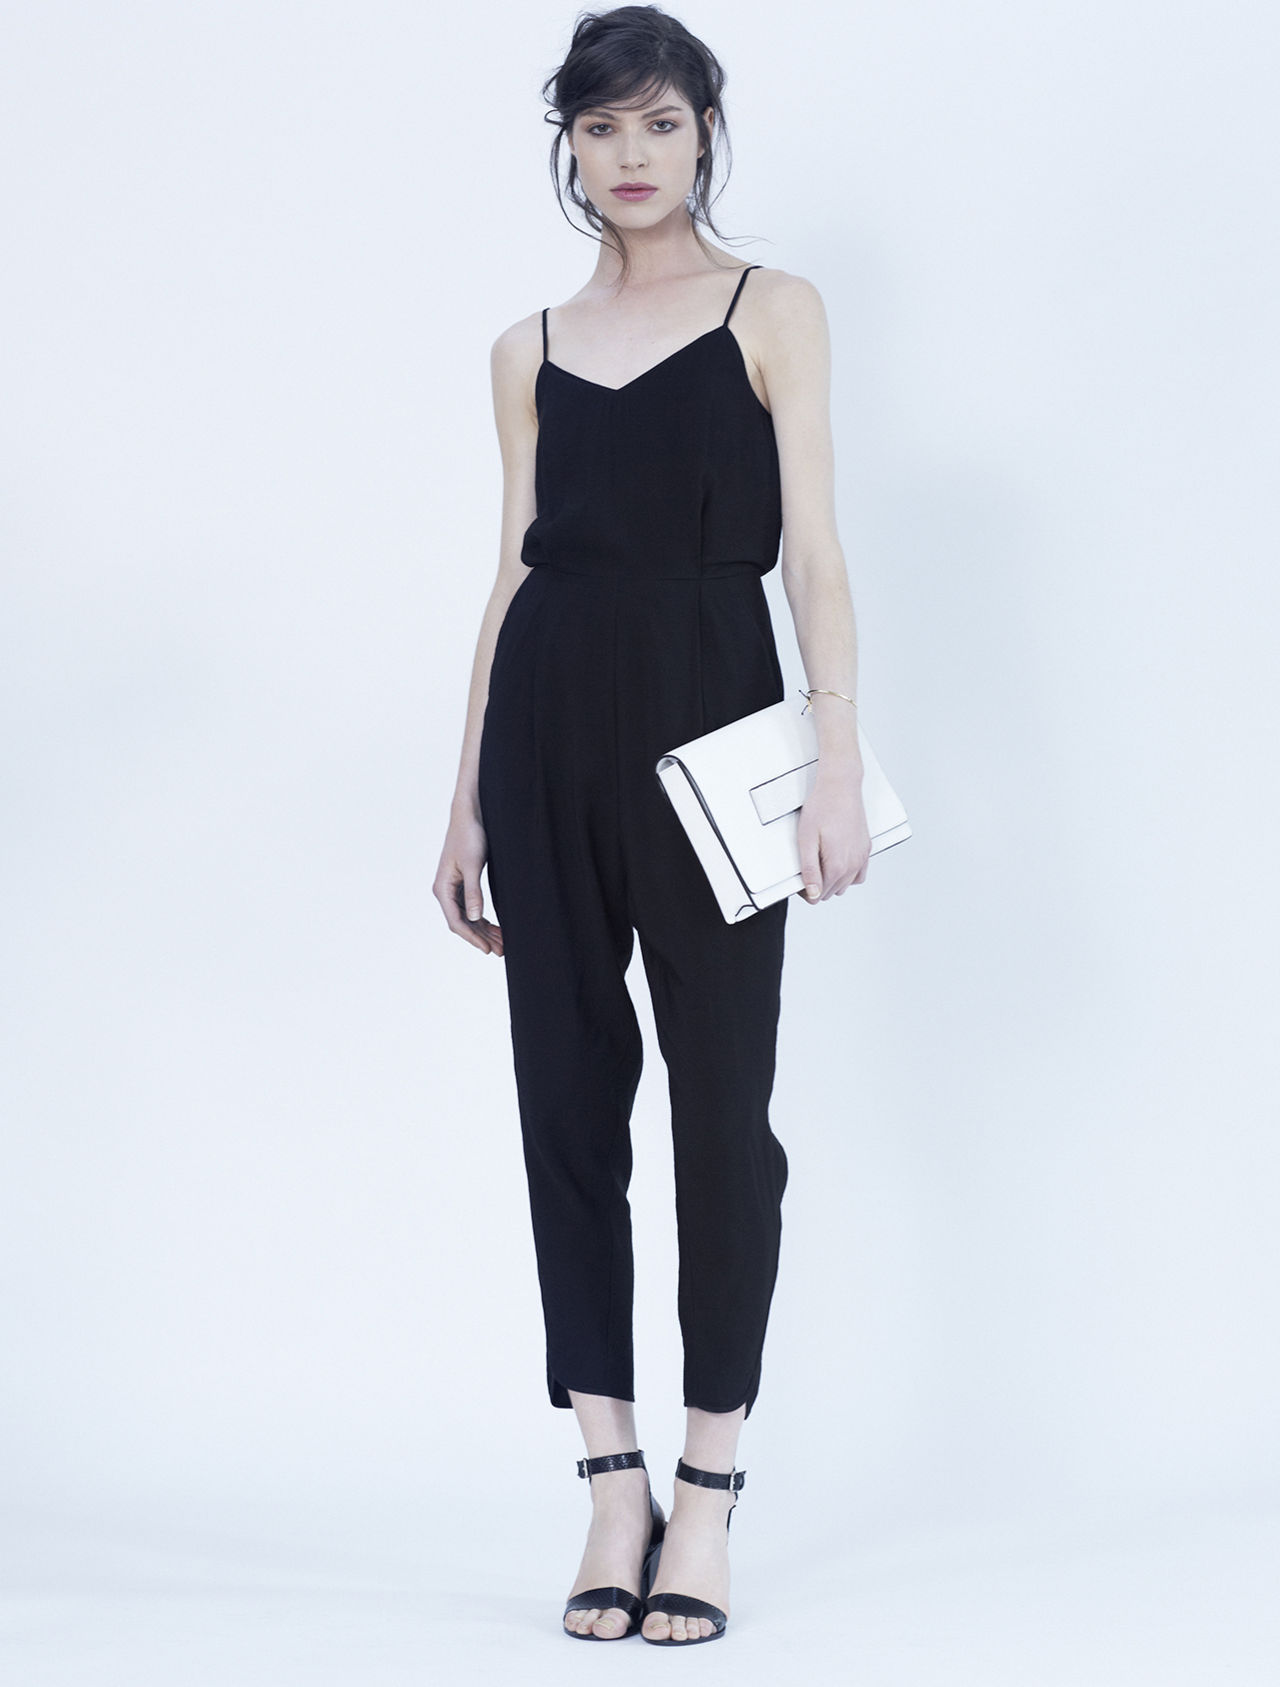 whistles_jumpsuit_03-1_004fe694500697